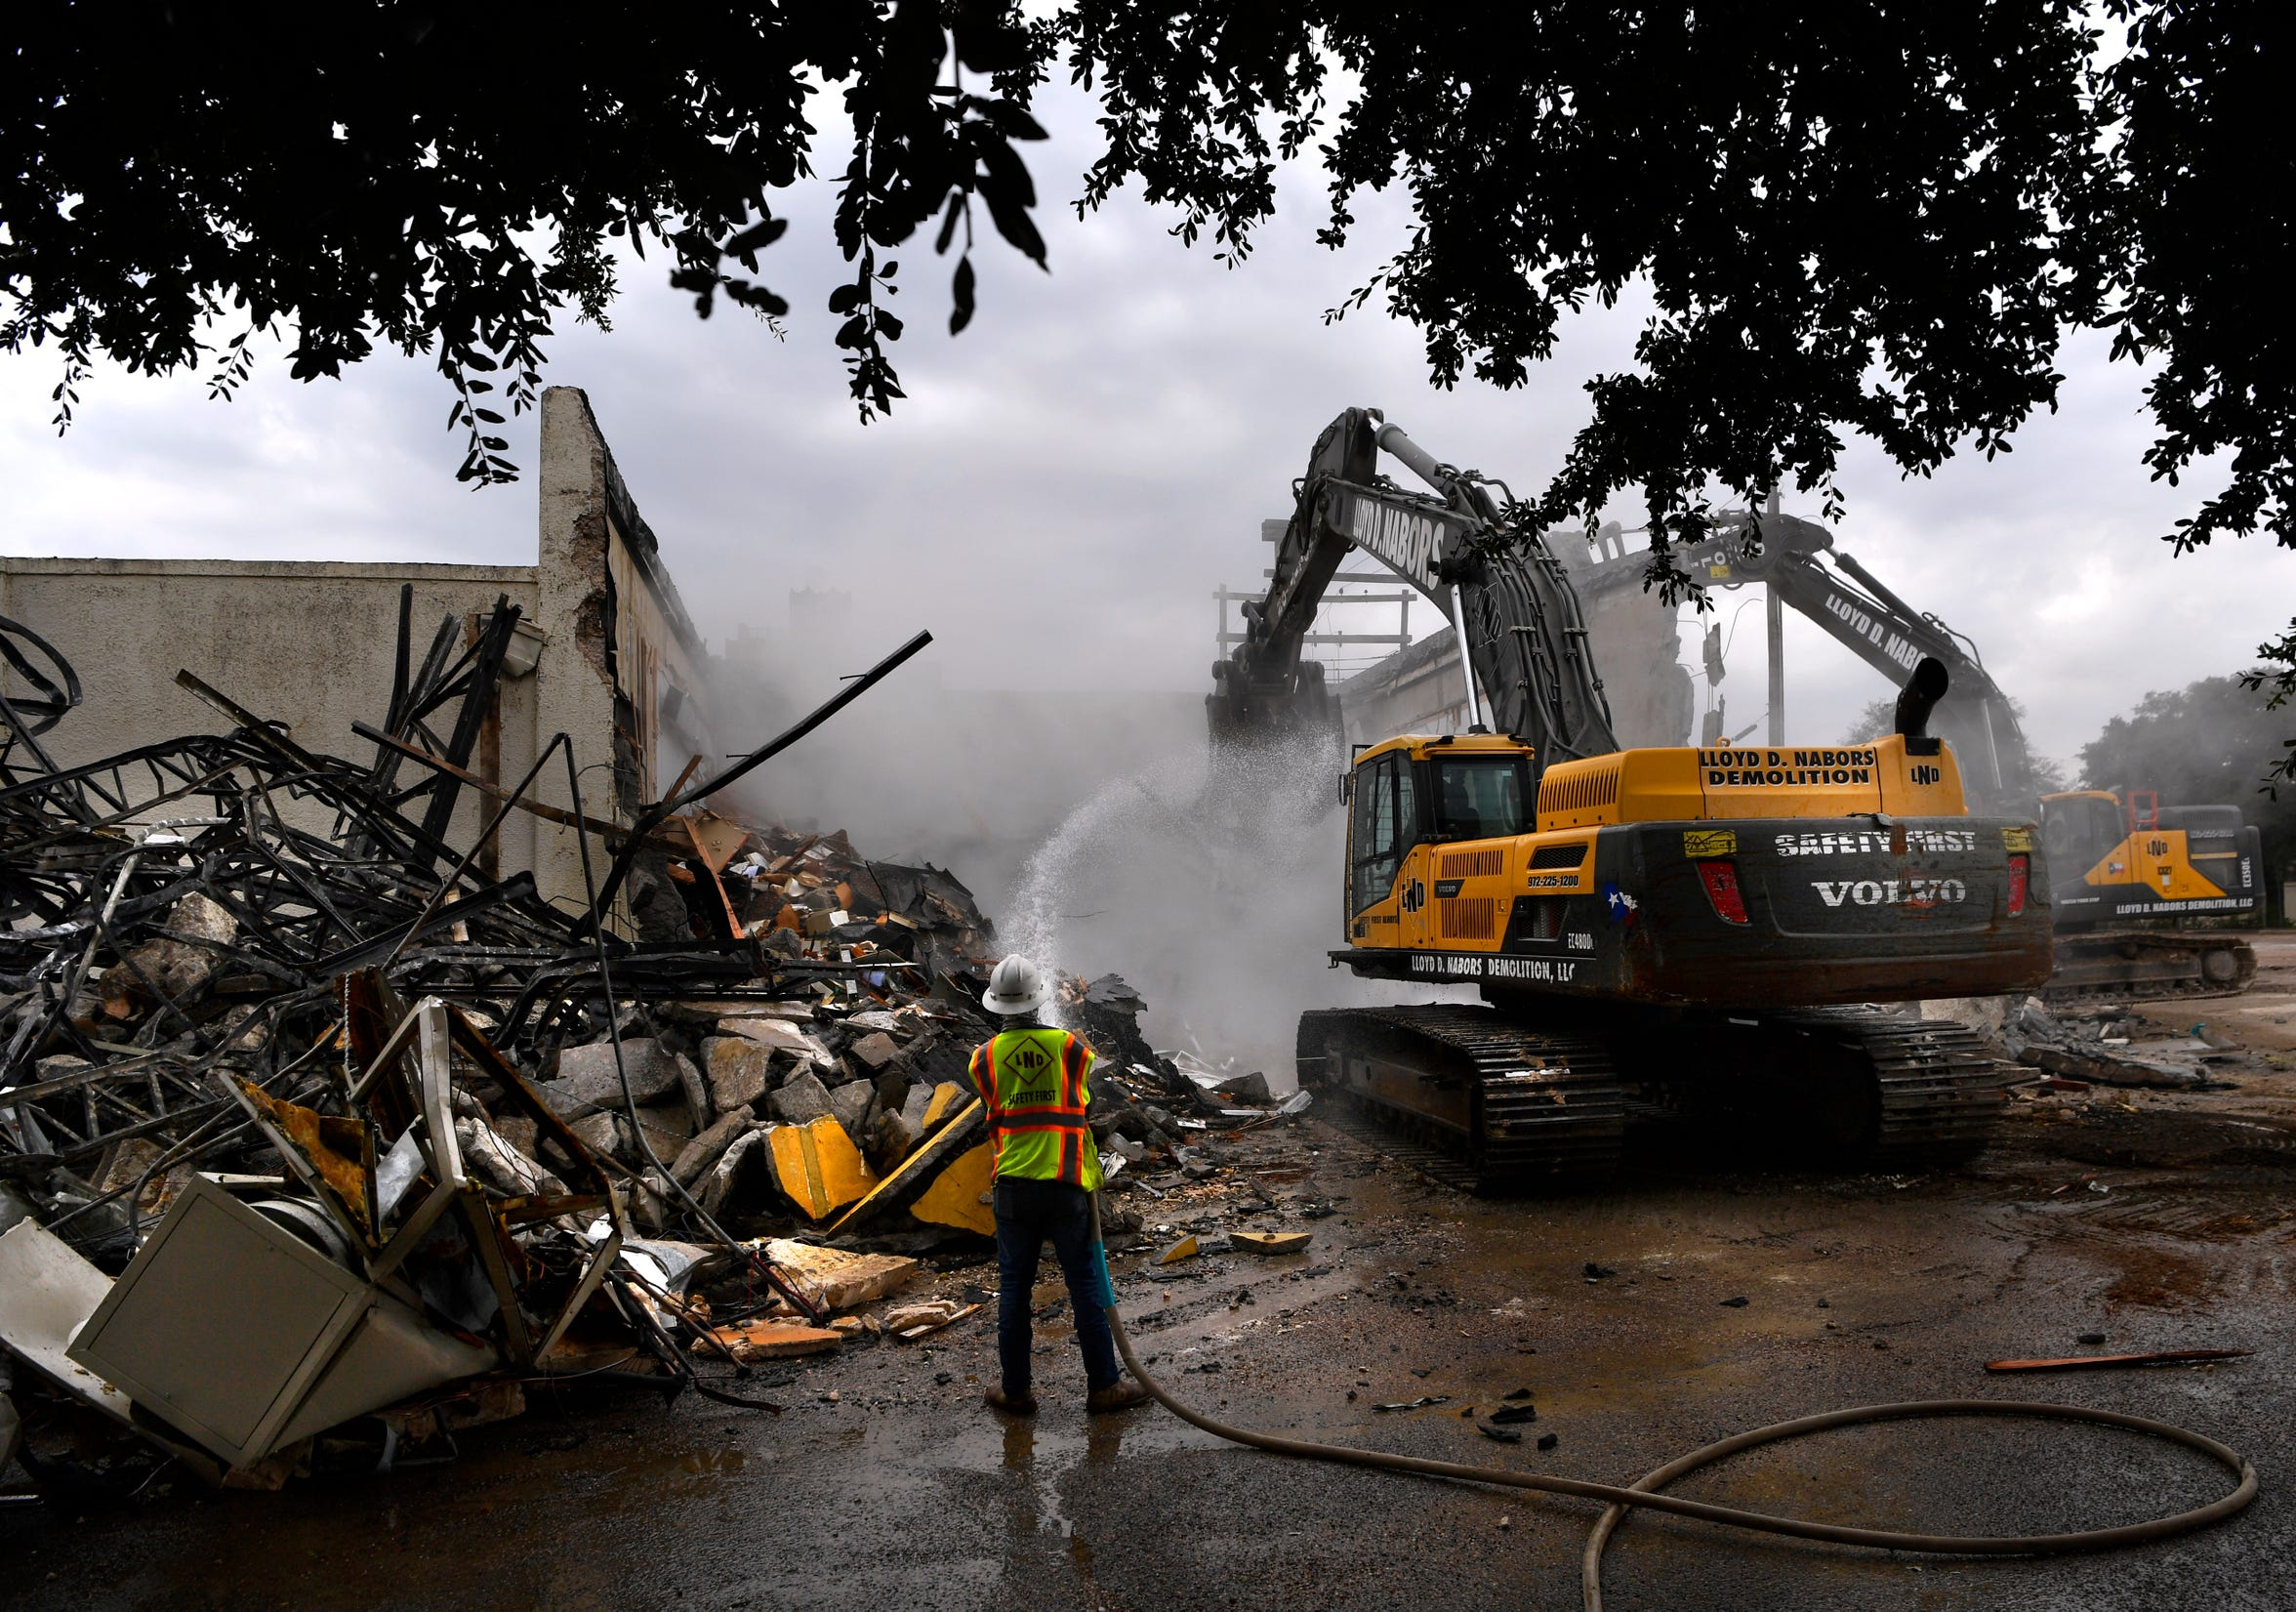 A worker hosed down the dust during demolition of the old Abilene Water Department building in the 1100 block of North Sixth Street Aug. 27.